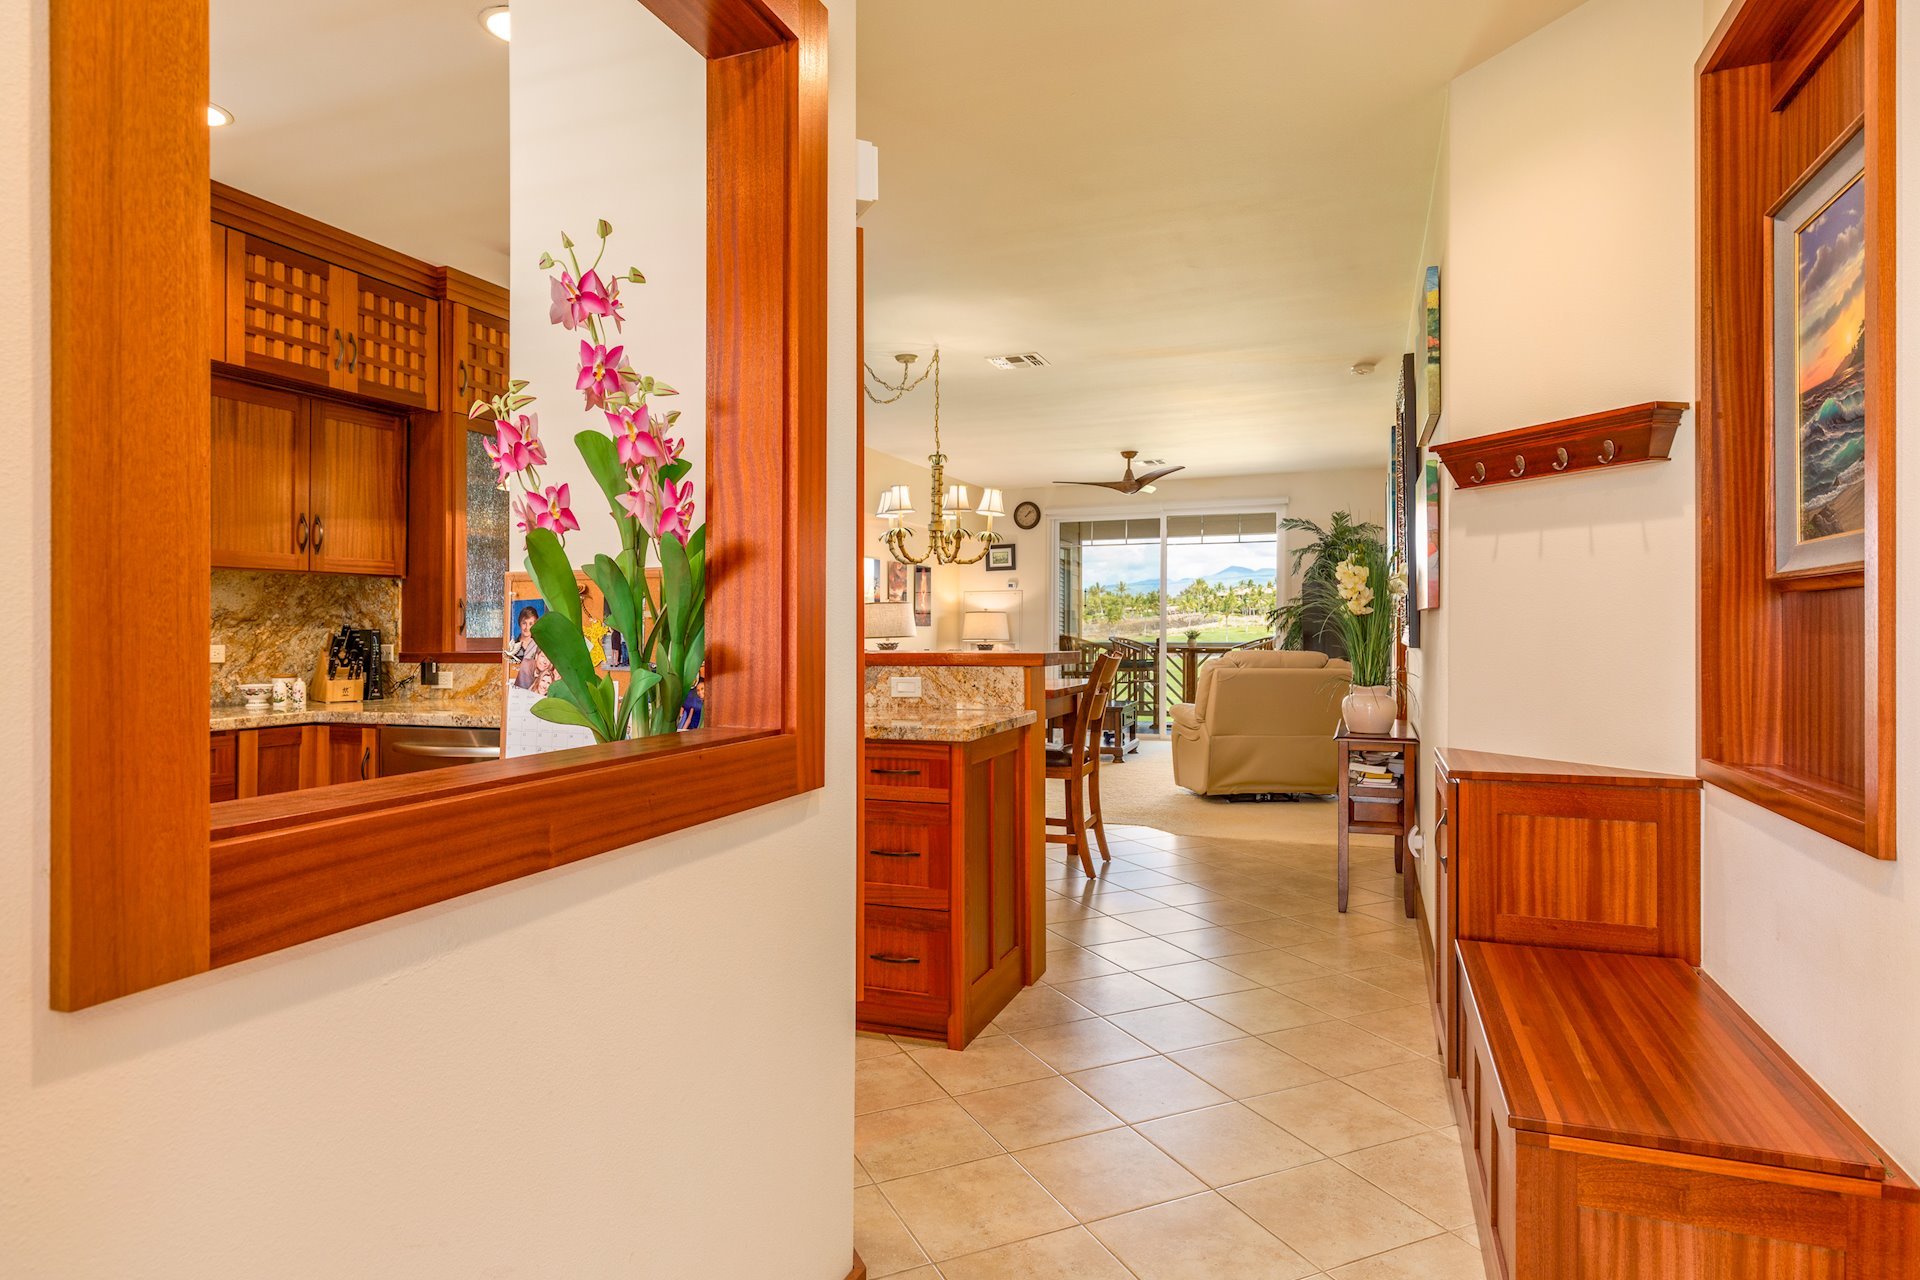 Entry with built-in storage bench and opening to the kitchen